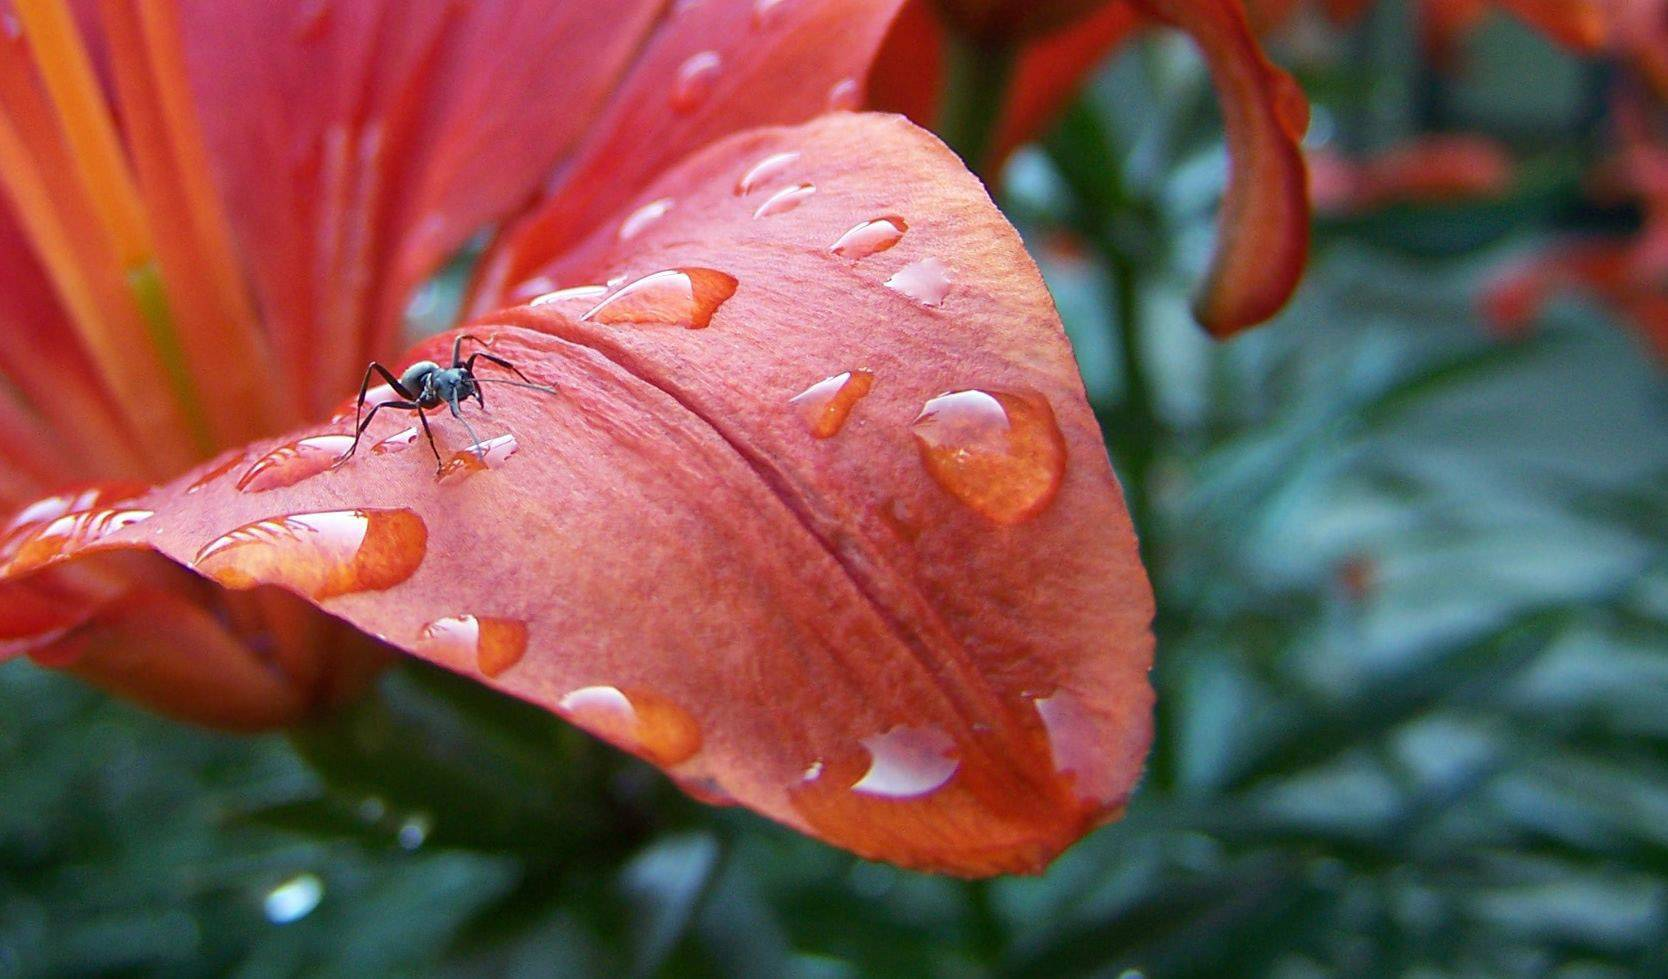 An ant walks on a red flower in an Elk Grove yard after it was covered in dew drops.